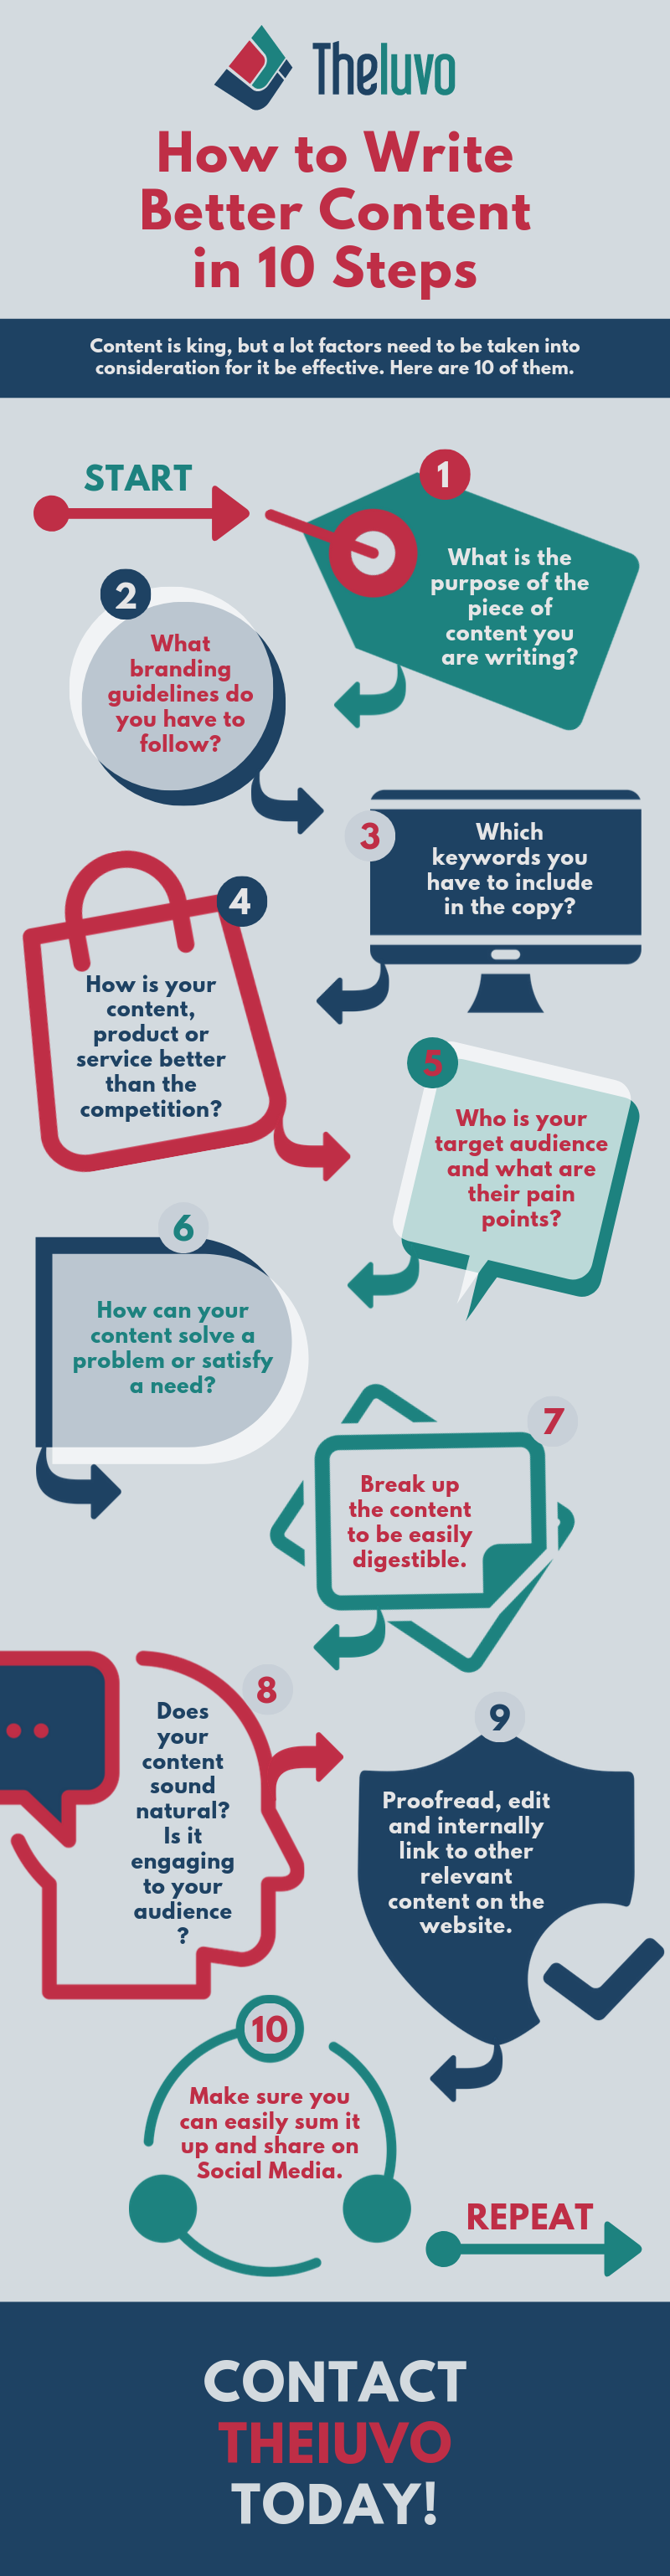 How to Write Better Content in 10 Steps Infographic